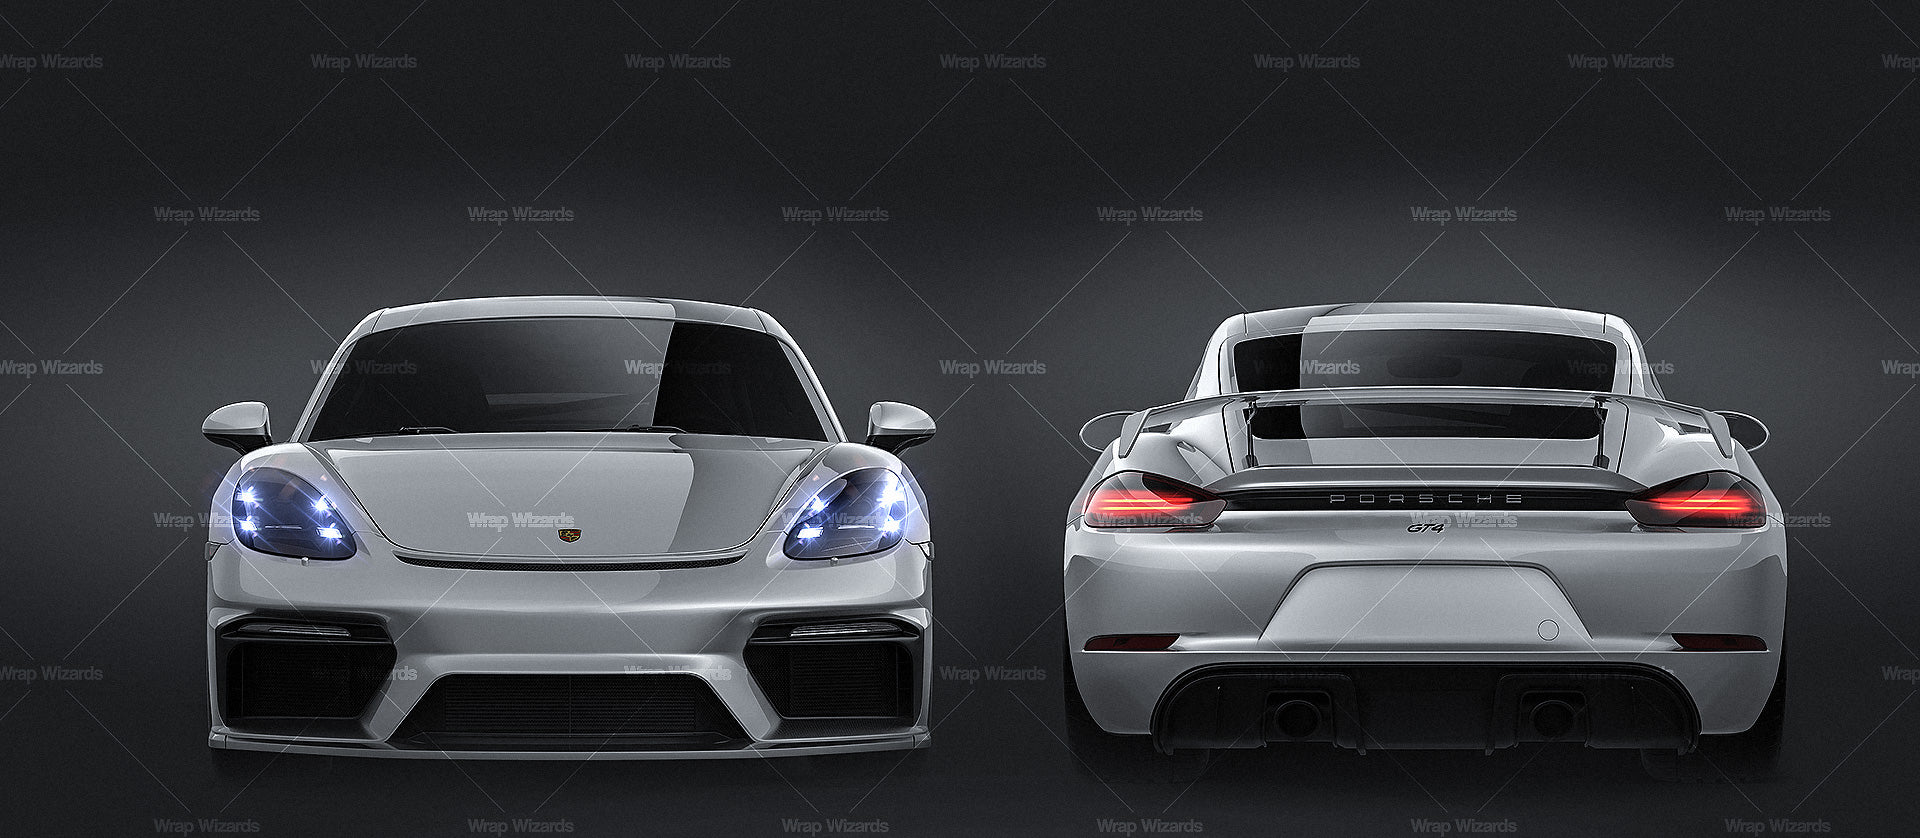 Porsche 718 Cayman GT4 2020 all sides Car Mockup Template.psd